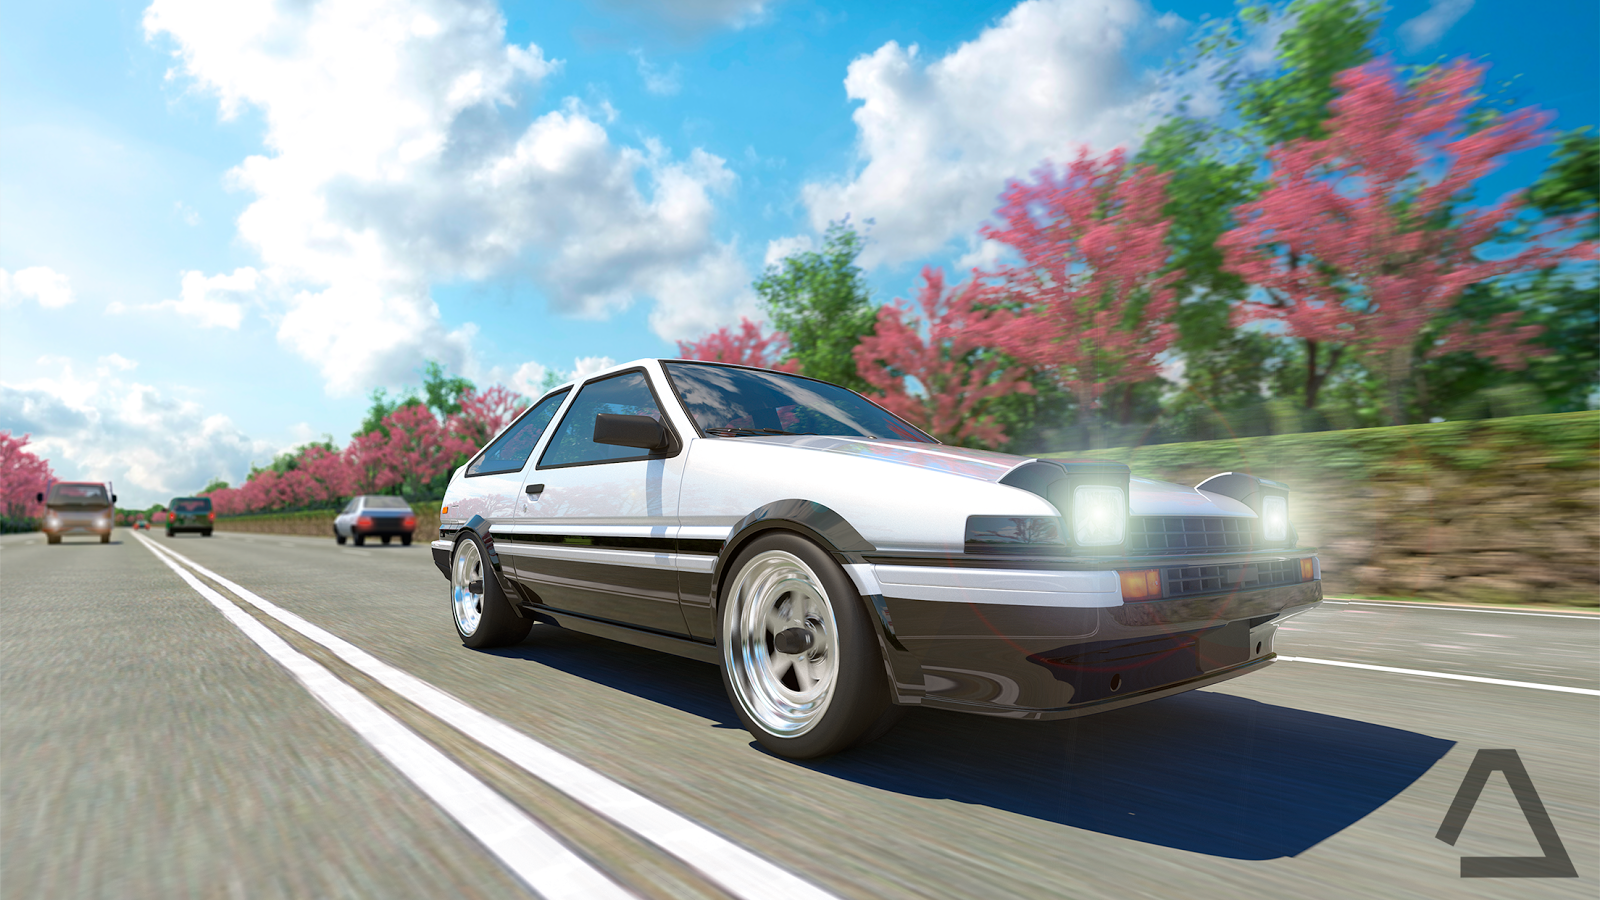 Driving Zone: Japan Screenshot 2